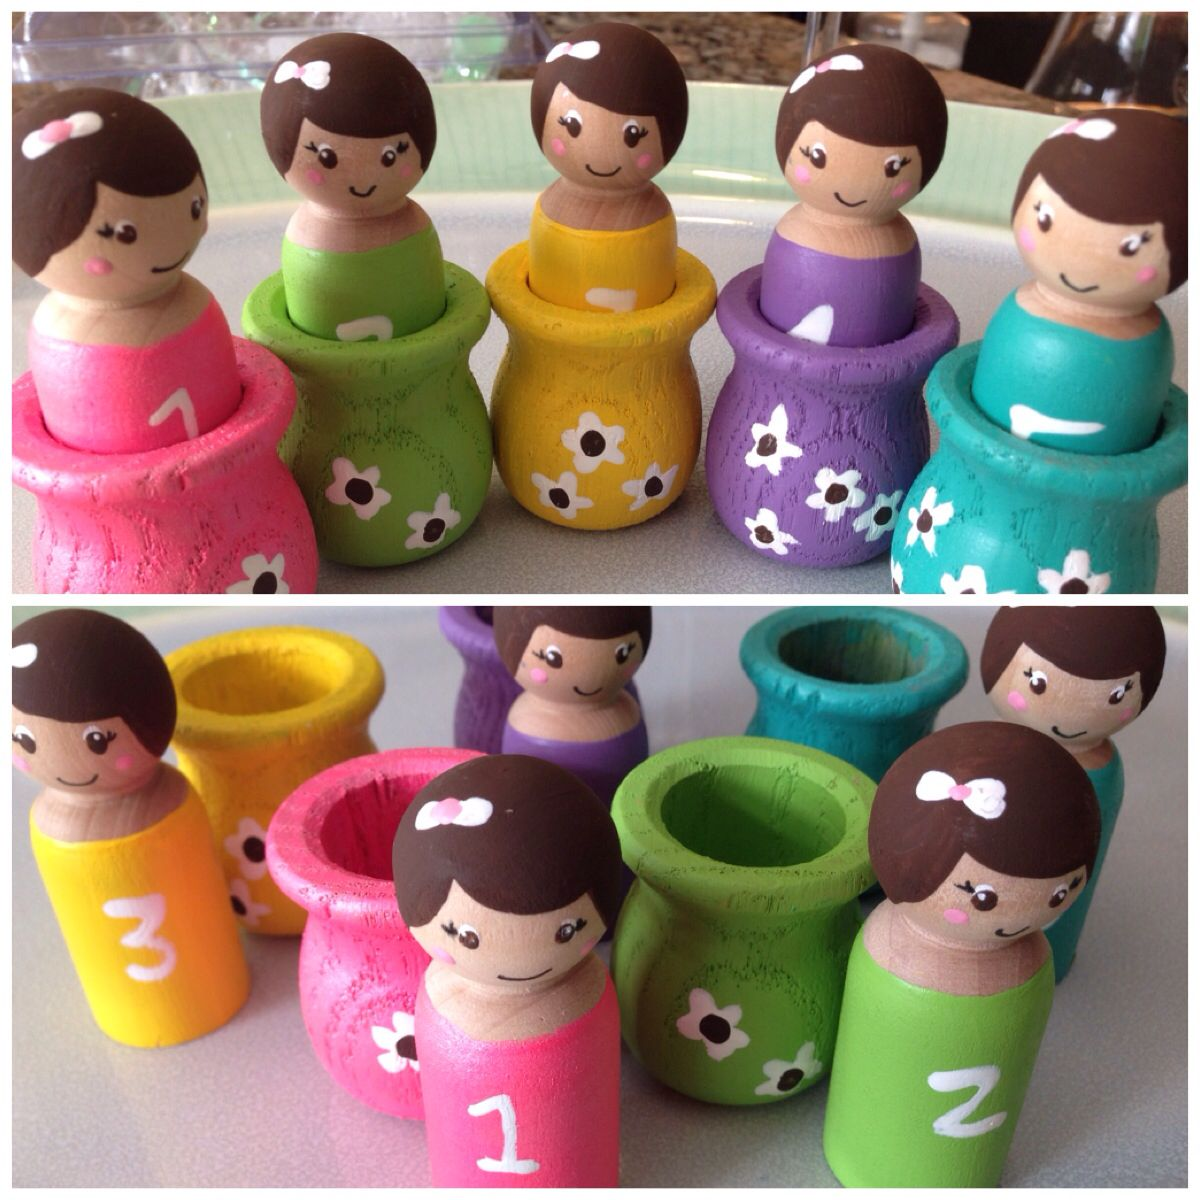 peg dolls for Dylan's first birthday